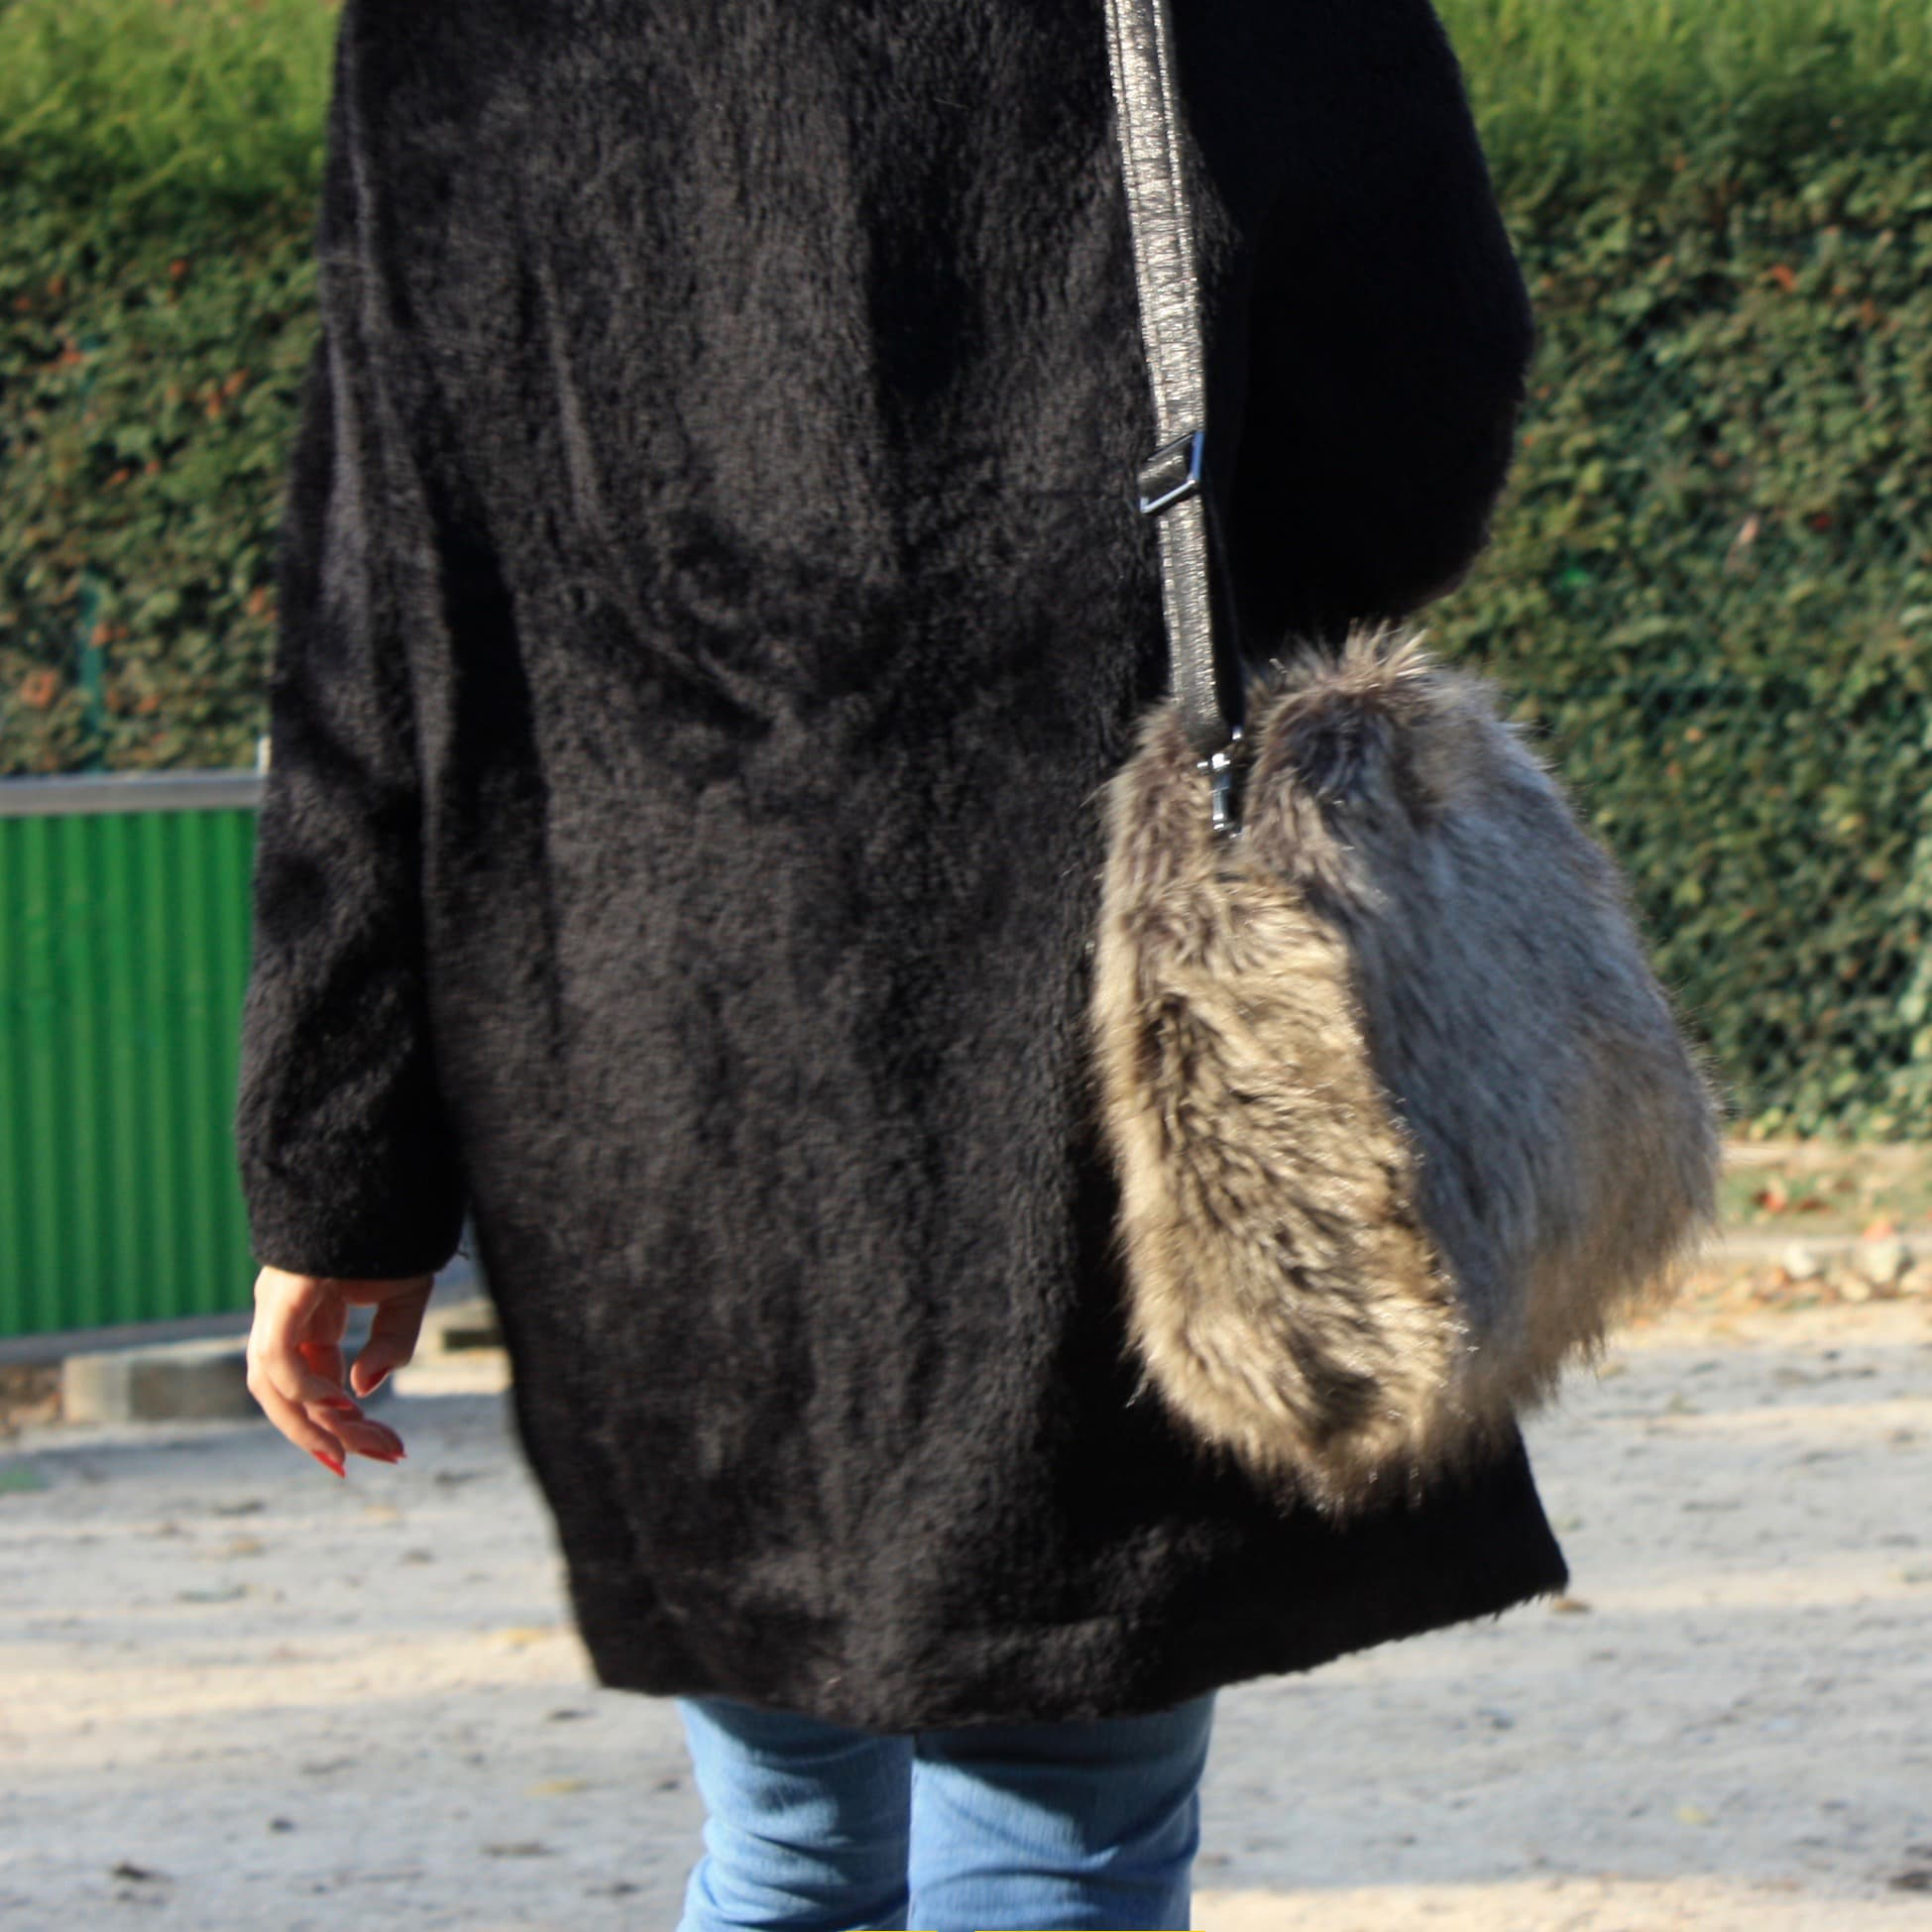 Silver stone fox fur imitation shoulder bag with adjustable and removable strap.